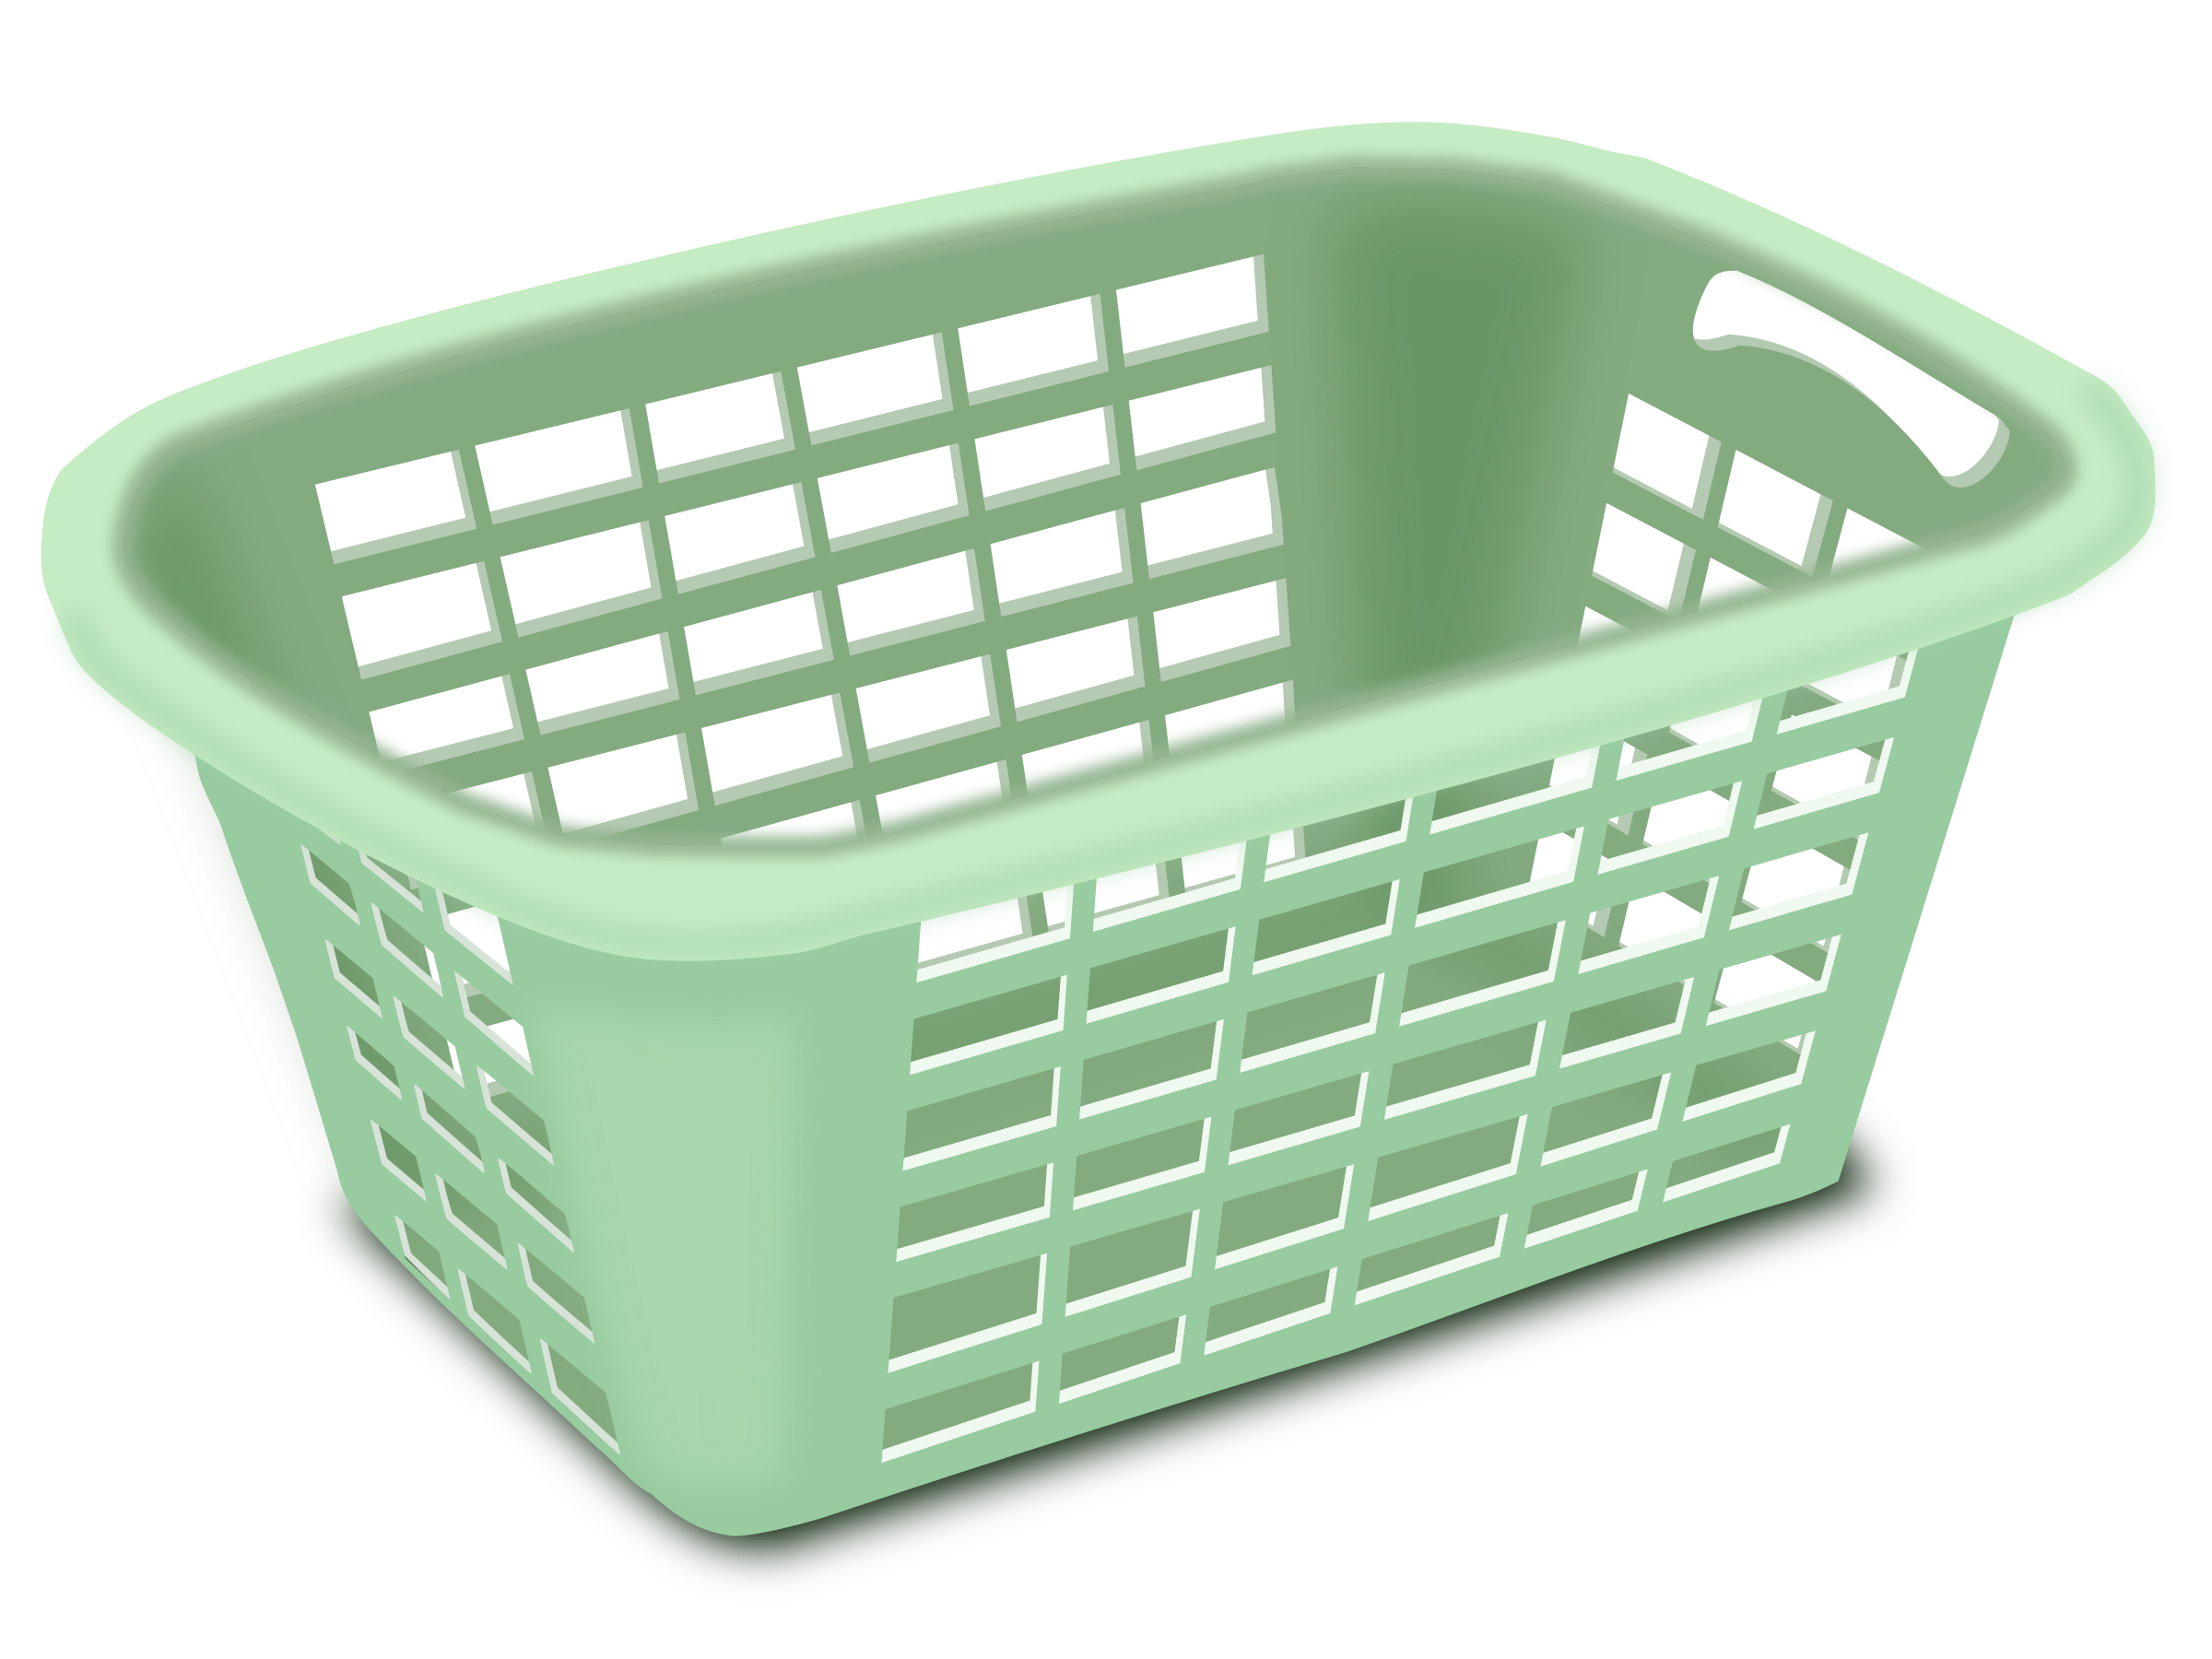 clipart plastic laundry basket. Black Bedroom Furniture Sets. Home Design Ideas